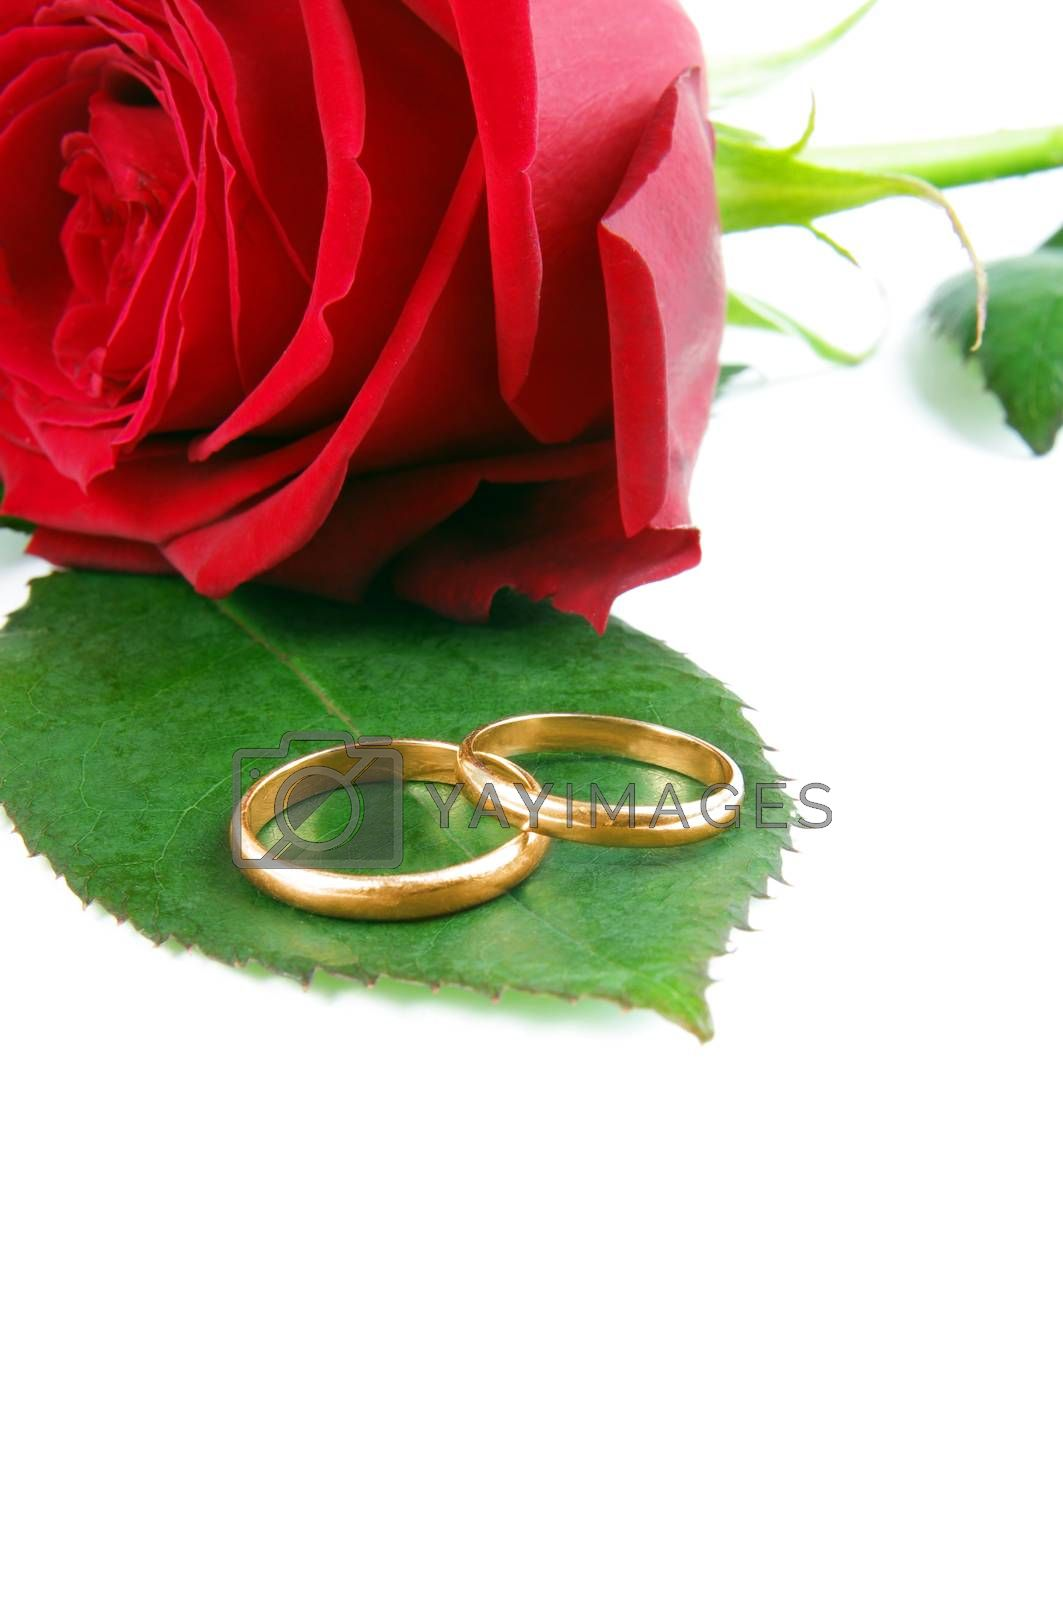 wedding rings with rose.copy space